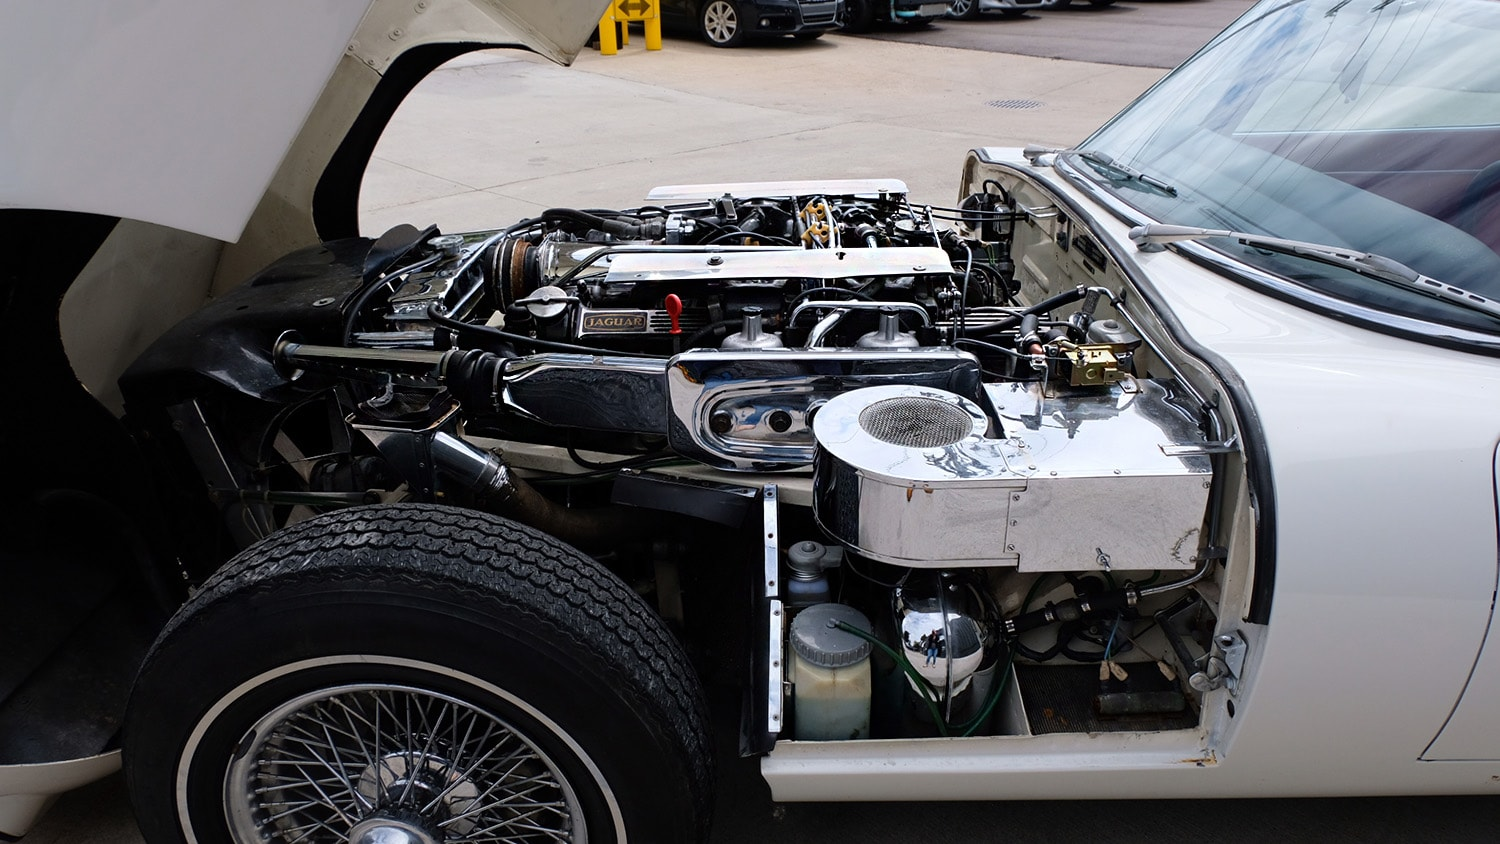 1972 Jaguar XKE Convertible Engine.JPG